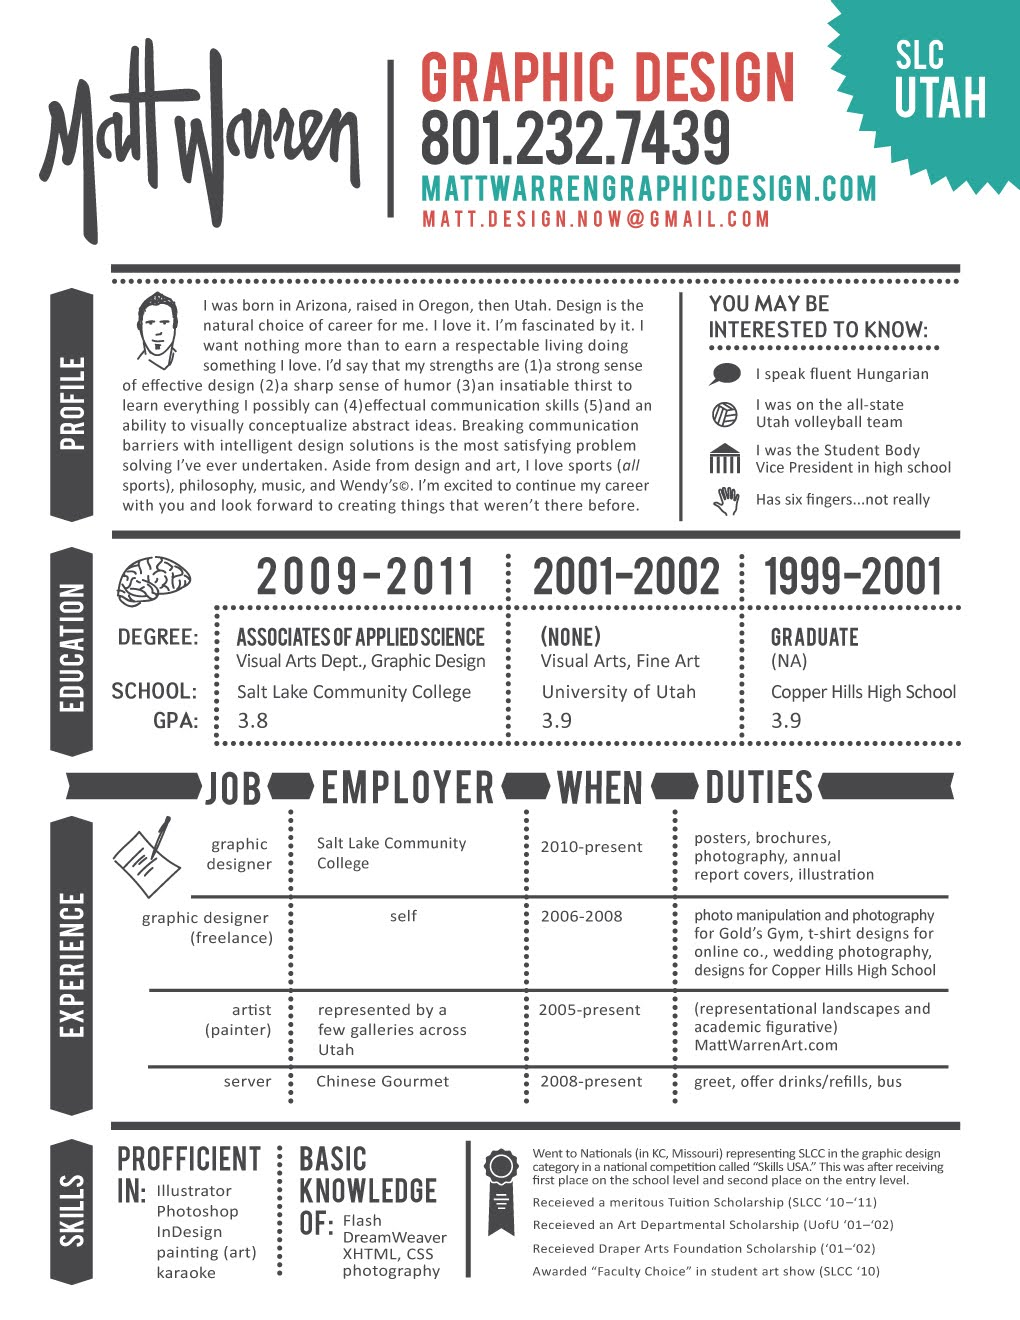 Opposenewapstandardsus  Surprising  Images About Hire Me On Pinterest  Graphic Designer Resume  With Fair  Images About Hire Me On Pinterest  Graphic Designer Resume Resume Design And Resume With Beauteous Sample Combination Resume Also Include Gpa On Resume In Addition Soft Skills Resume And Security Job Resume As Well As Computer Skills To Put On A Resume Additionally Youth Pastor Resume From Pinterestcom With Opposenewapstandardsus  Fair  Images About Hire Me On Pinterest  Graphic Designer Resume  With Beauteous  Images About Hire Me On Pinterest  Graphic Designer Resume Resume Design And Resume And Surprising Sample Combination Resume Also Include Gpa On Resume In Addition Soft Skills Resume From Pinterestcom